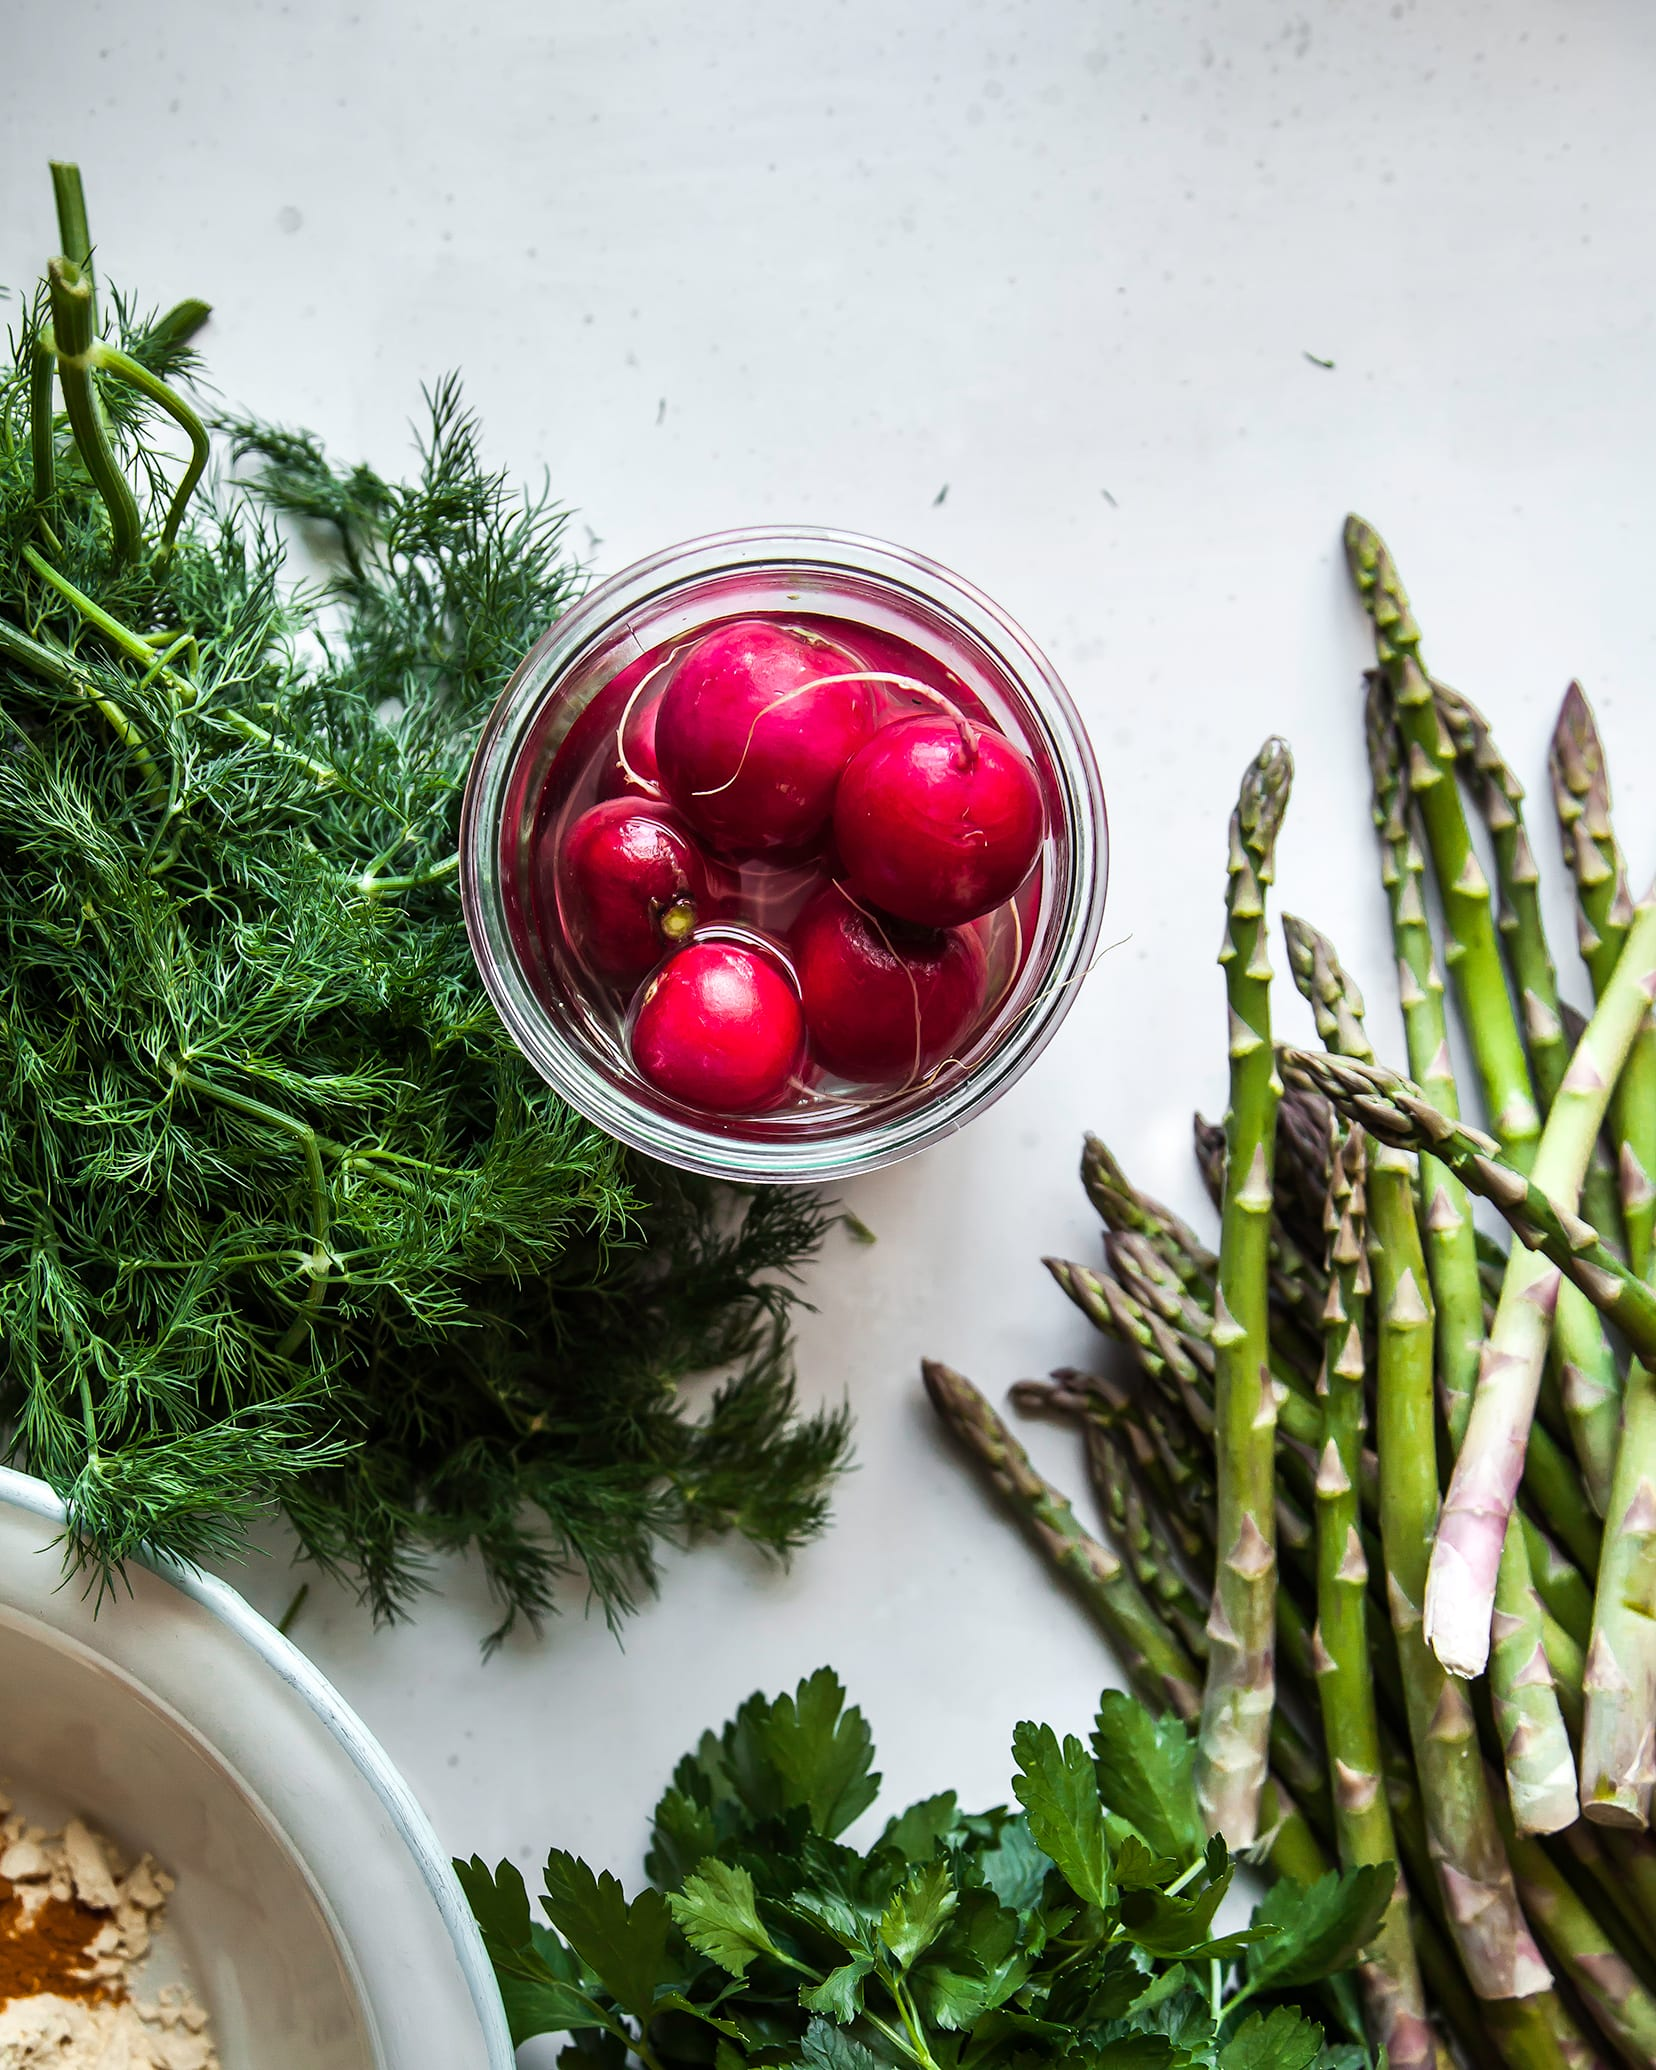 An overhead shot of asparagus, radishes and fresh dill on a white background.